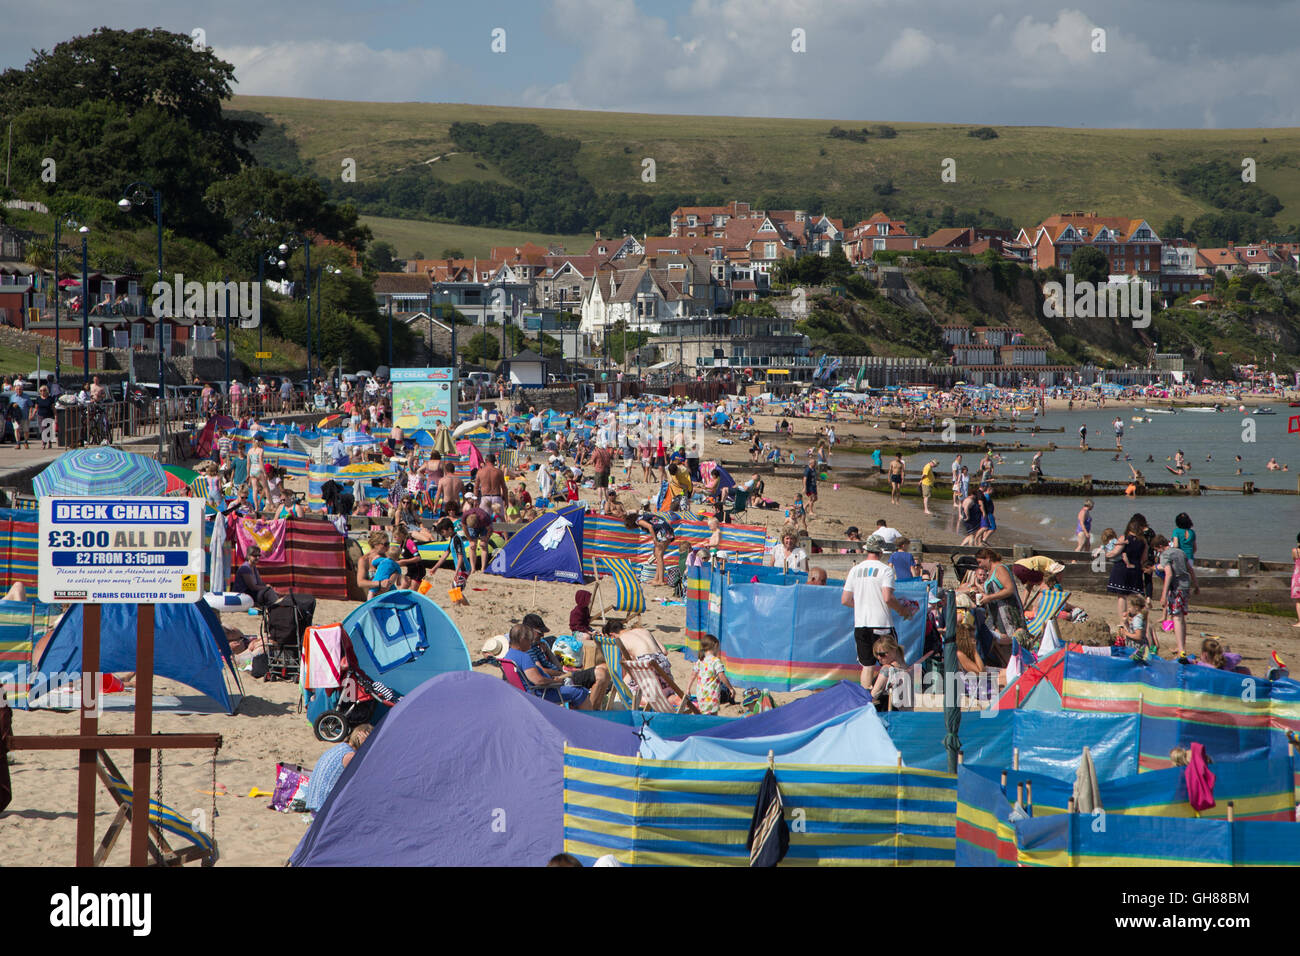 Swanage Bay, Dorset, UK. 9th August, 2016. UK Weather: The heat wave weather continues this week as hundreds of - Stock Image